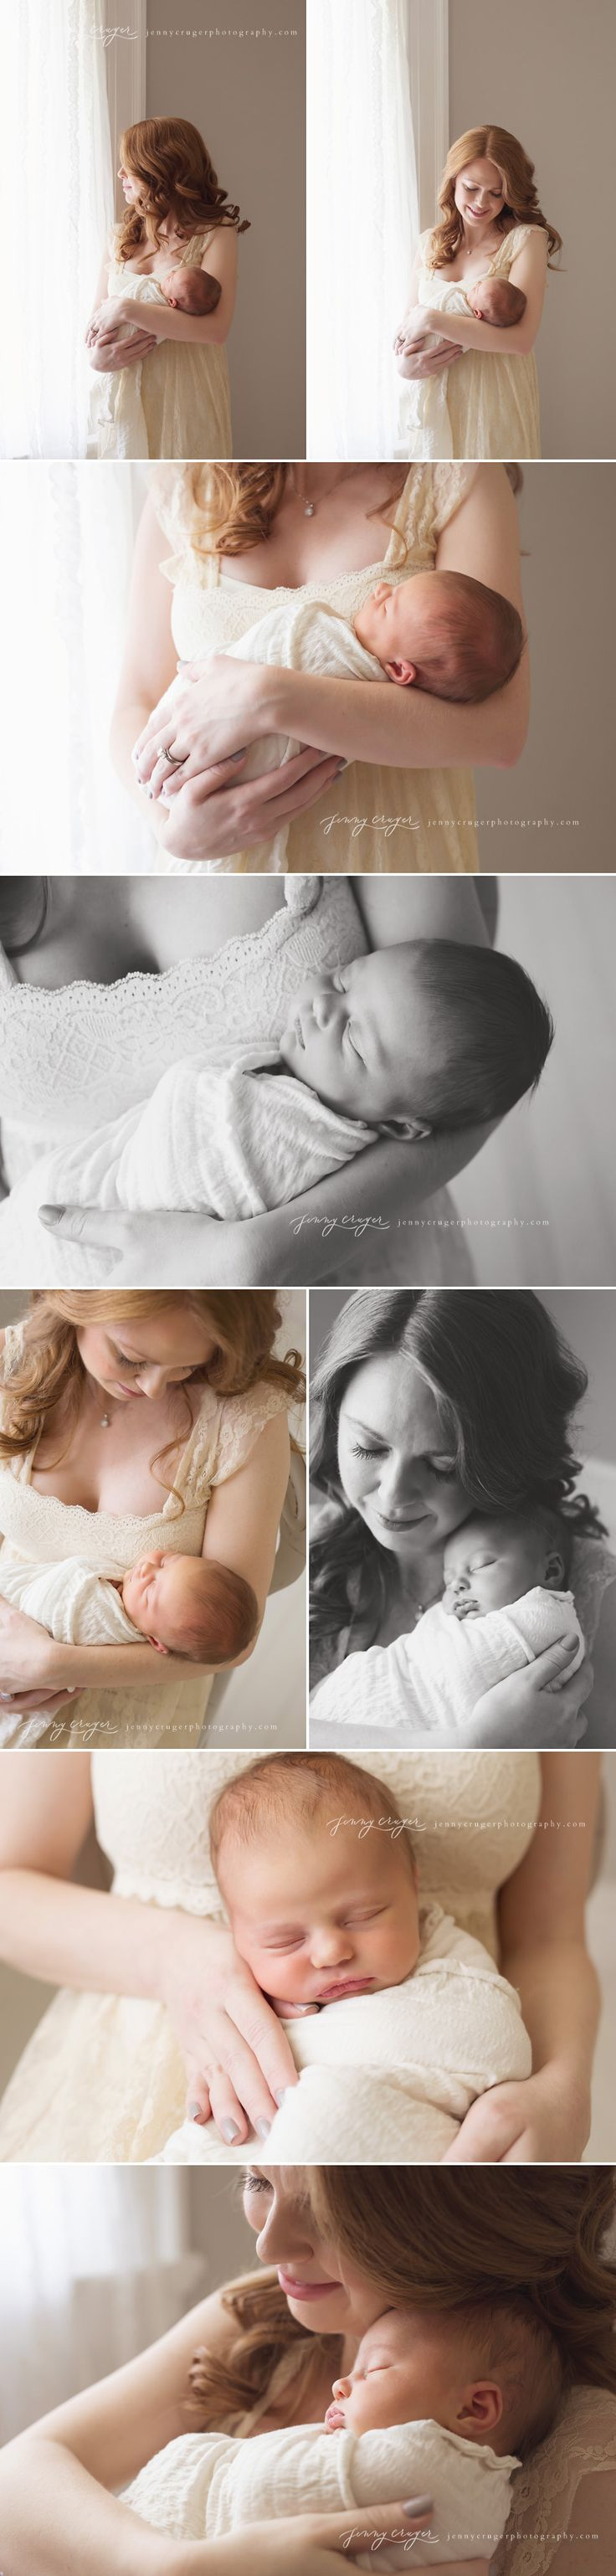 nashville newborn photographer | jenny cruger photography